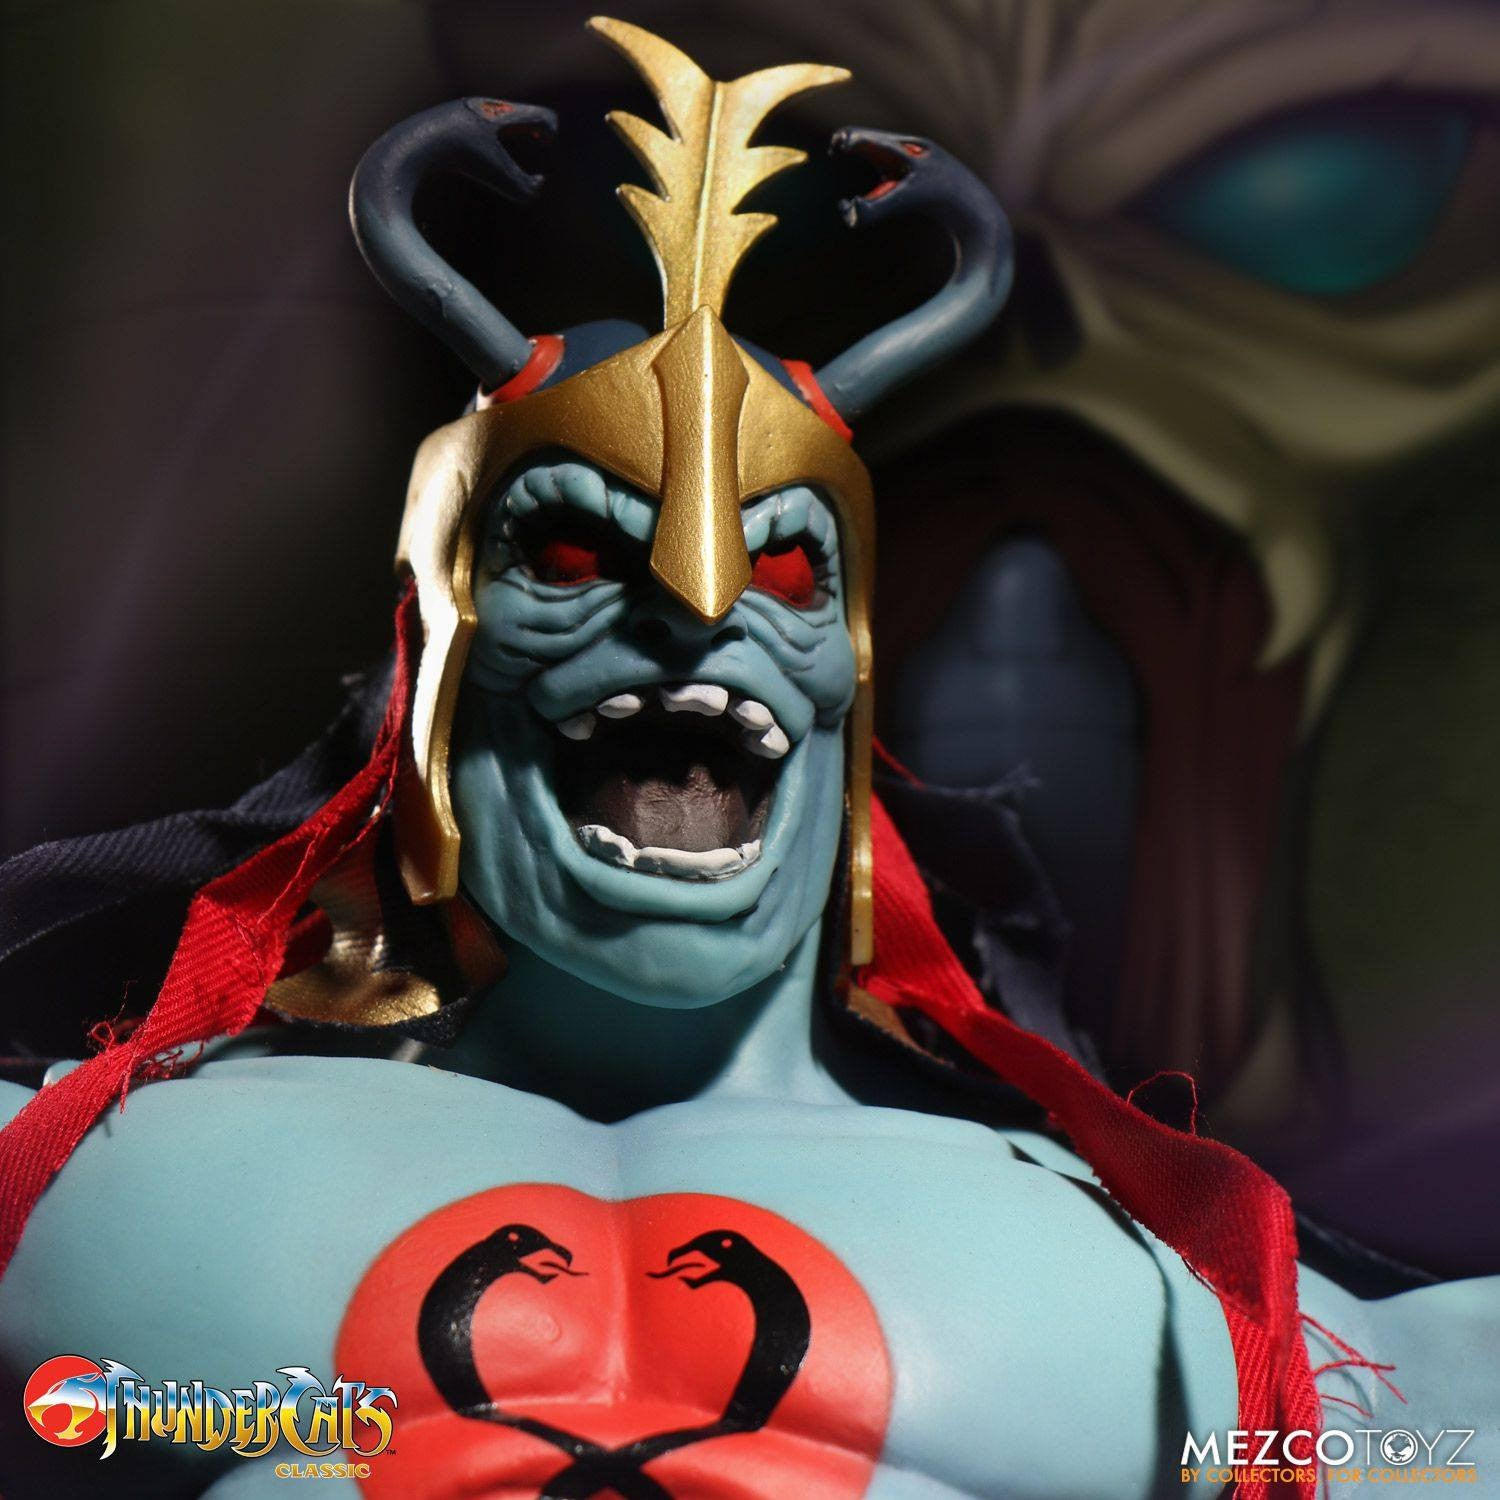 Mezco - Mega Scale - Thundercats - Mumm-Ra (Glow in the Dark Edition) - Marvelous Toys - 3